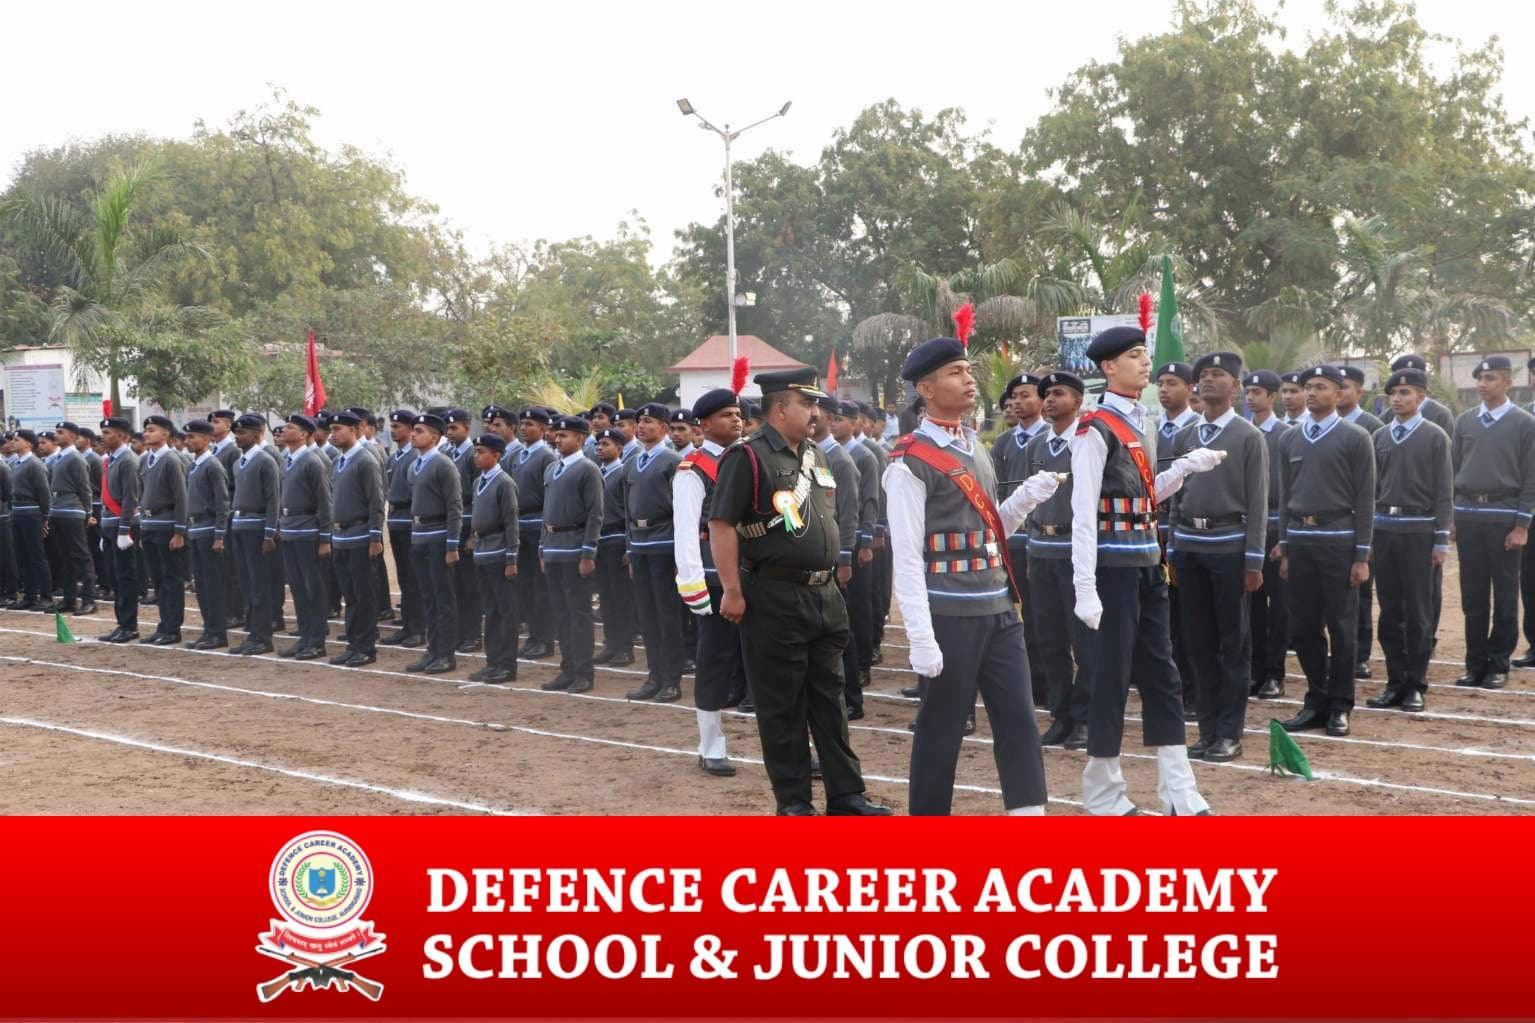 qualification-for-indian-army-soldier-join-defence-career-academy-aurangabad